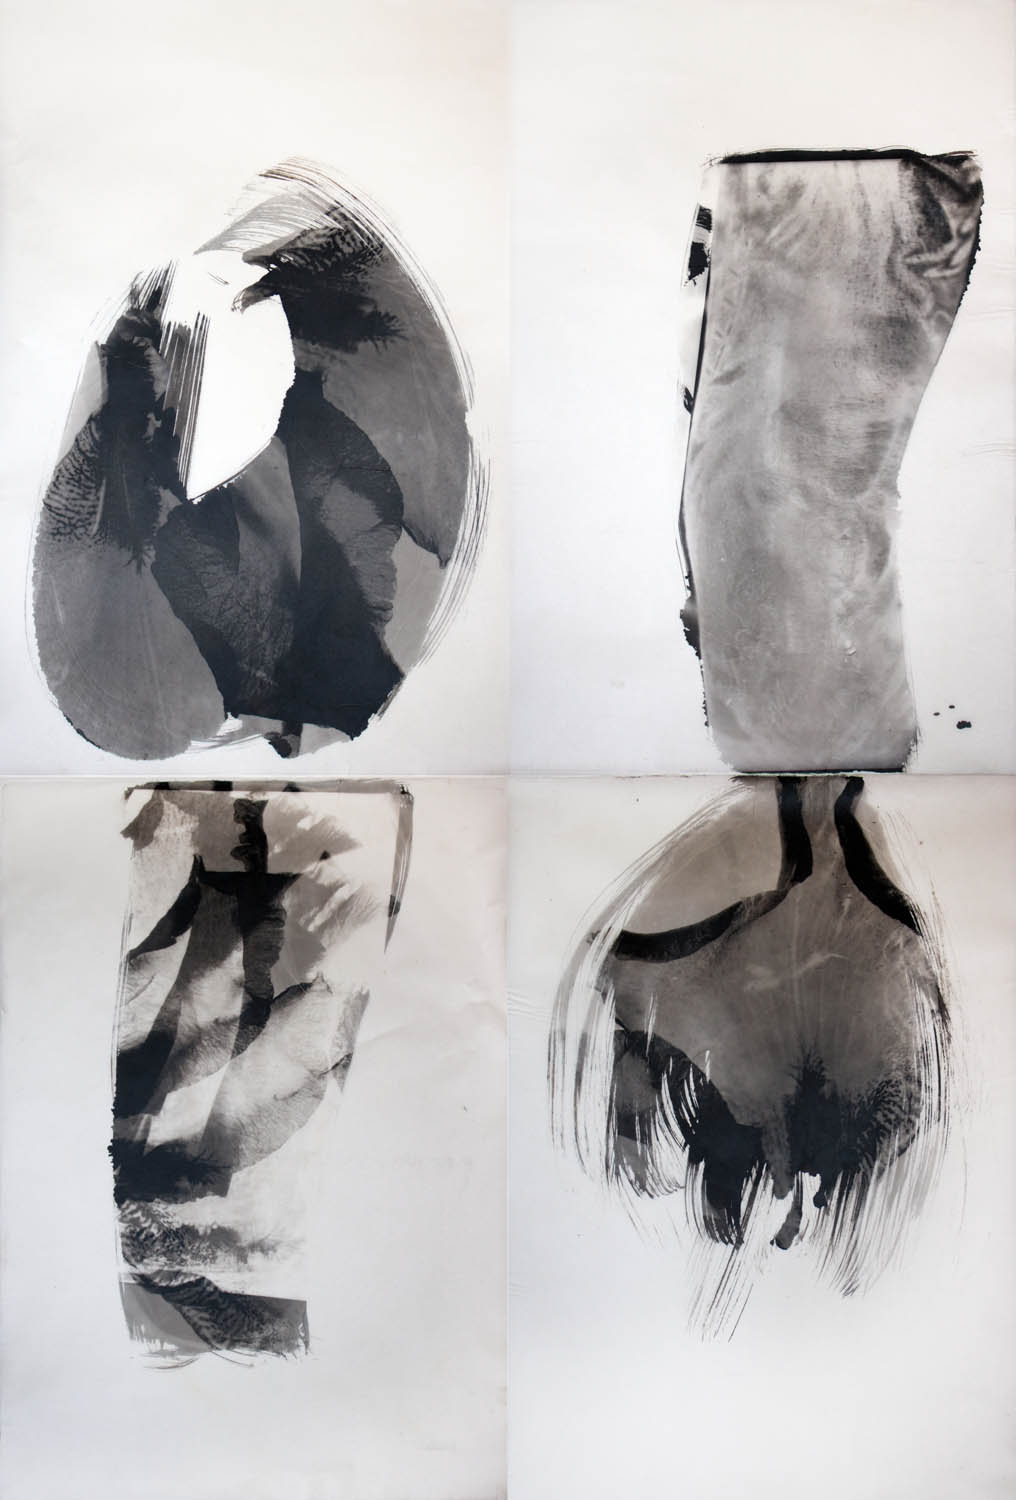 An abstract set of four images based on an Iris flower with one of the images being a man's tattooed arm.